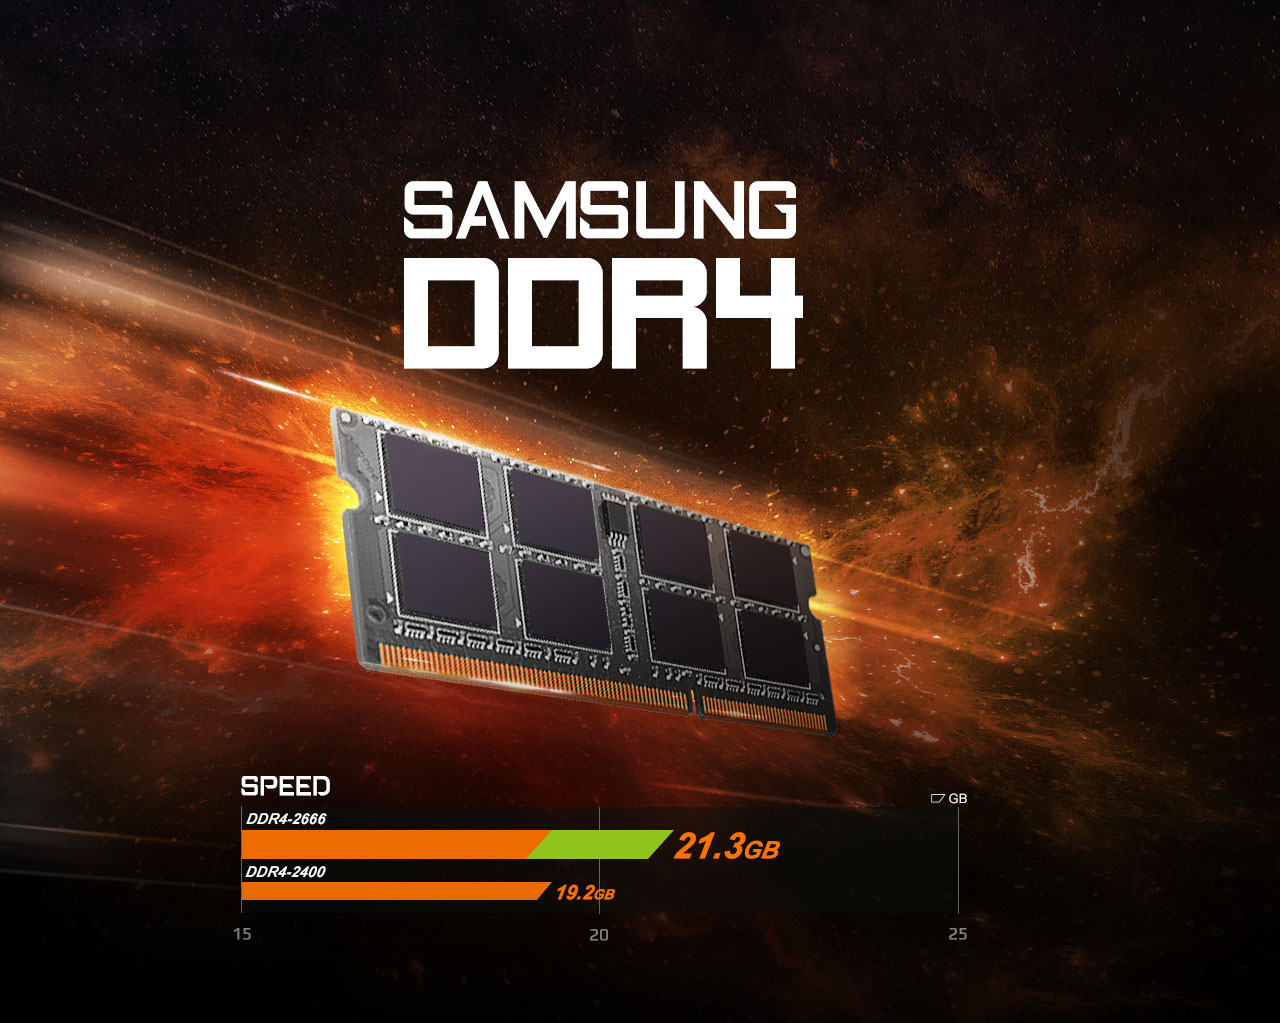 SAMSUNG DDR4 memory in orange galactic space above a chart that shows DDR4-2666 is 21.3 gigabit speed compared to DDR4-2400's 19.2 gigabit